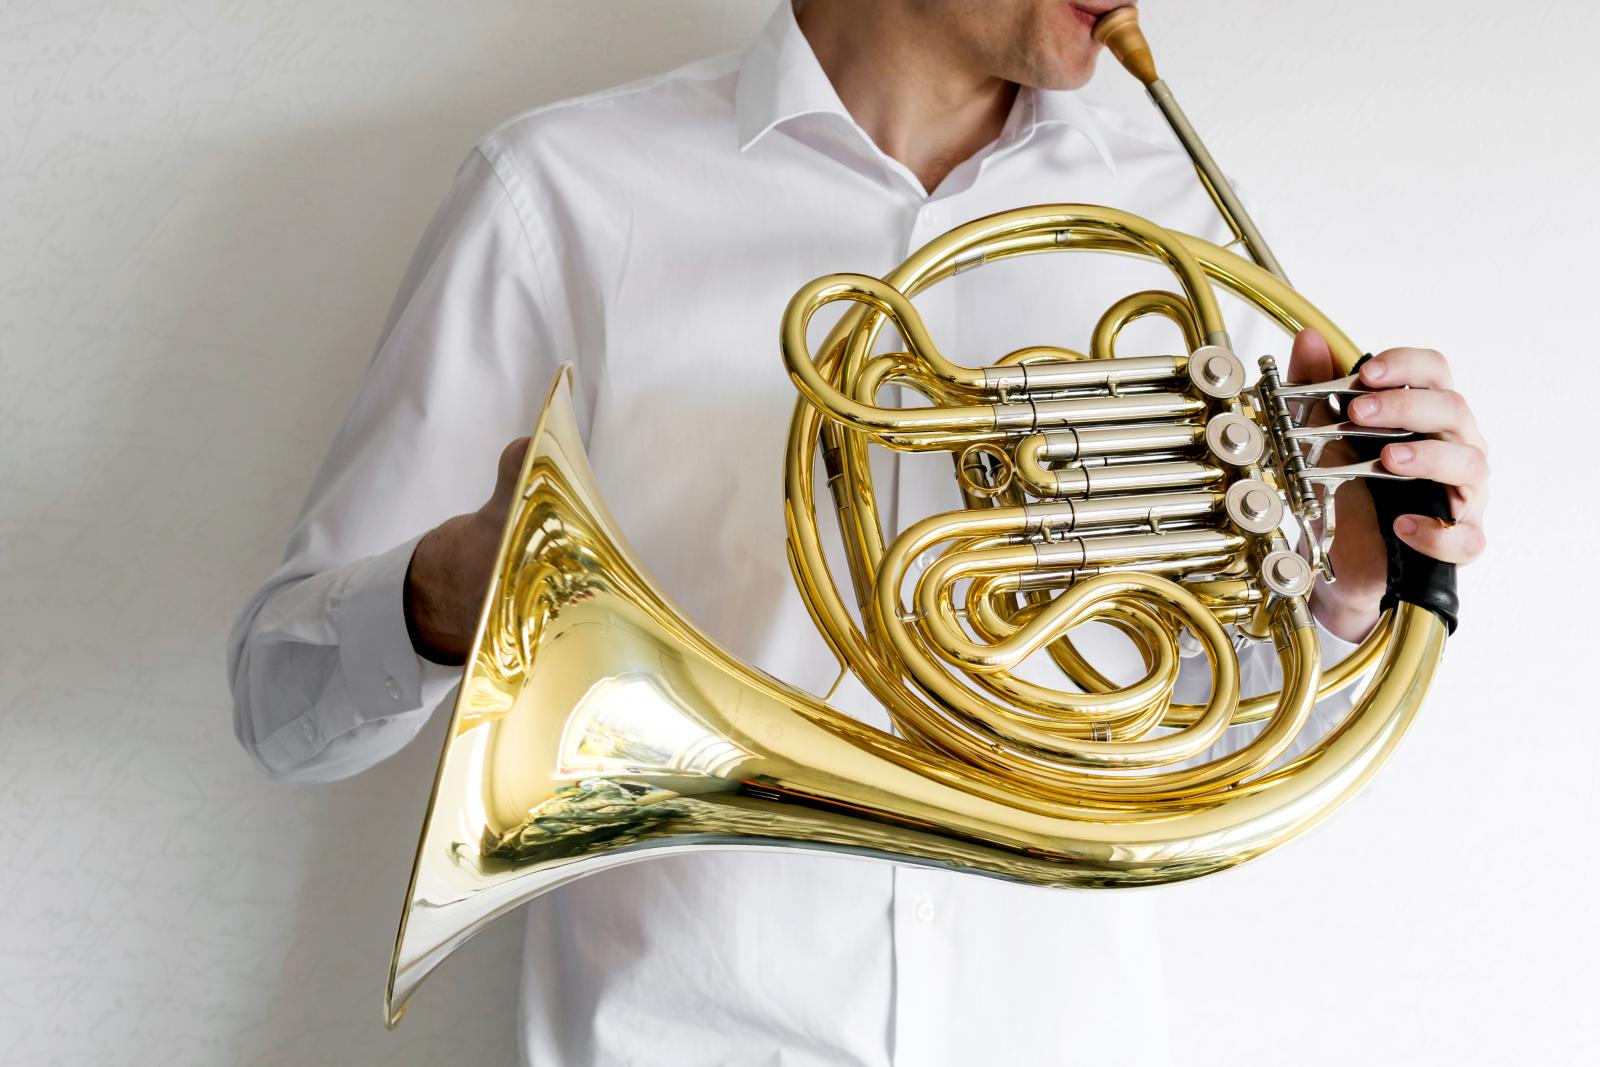 Man playing brass instrument before placing in storage unit.